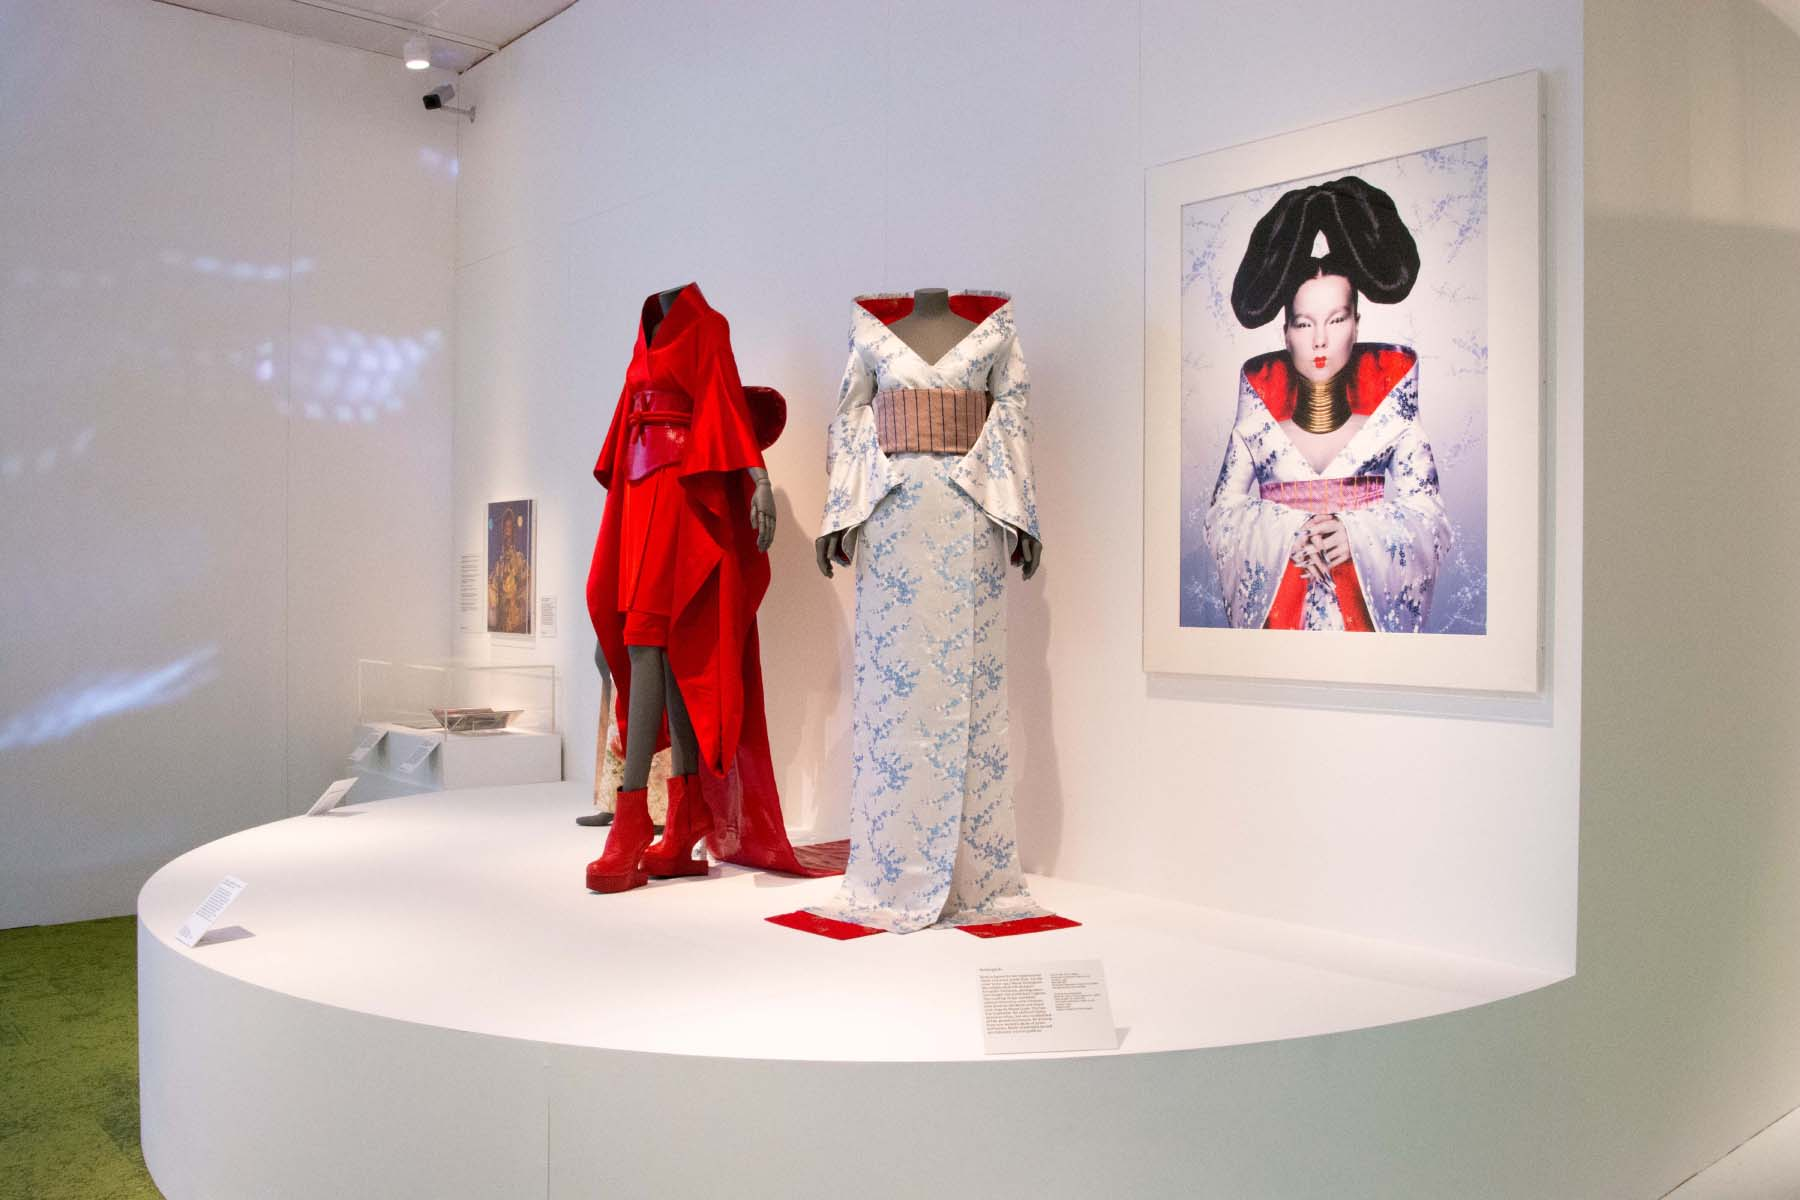 Yoshikimono partners with V&A on it's new exhibition